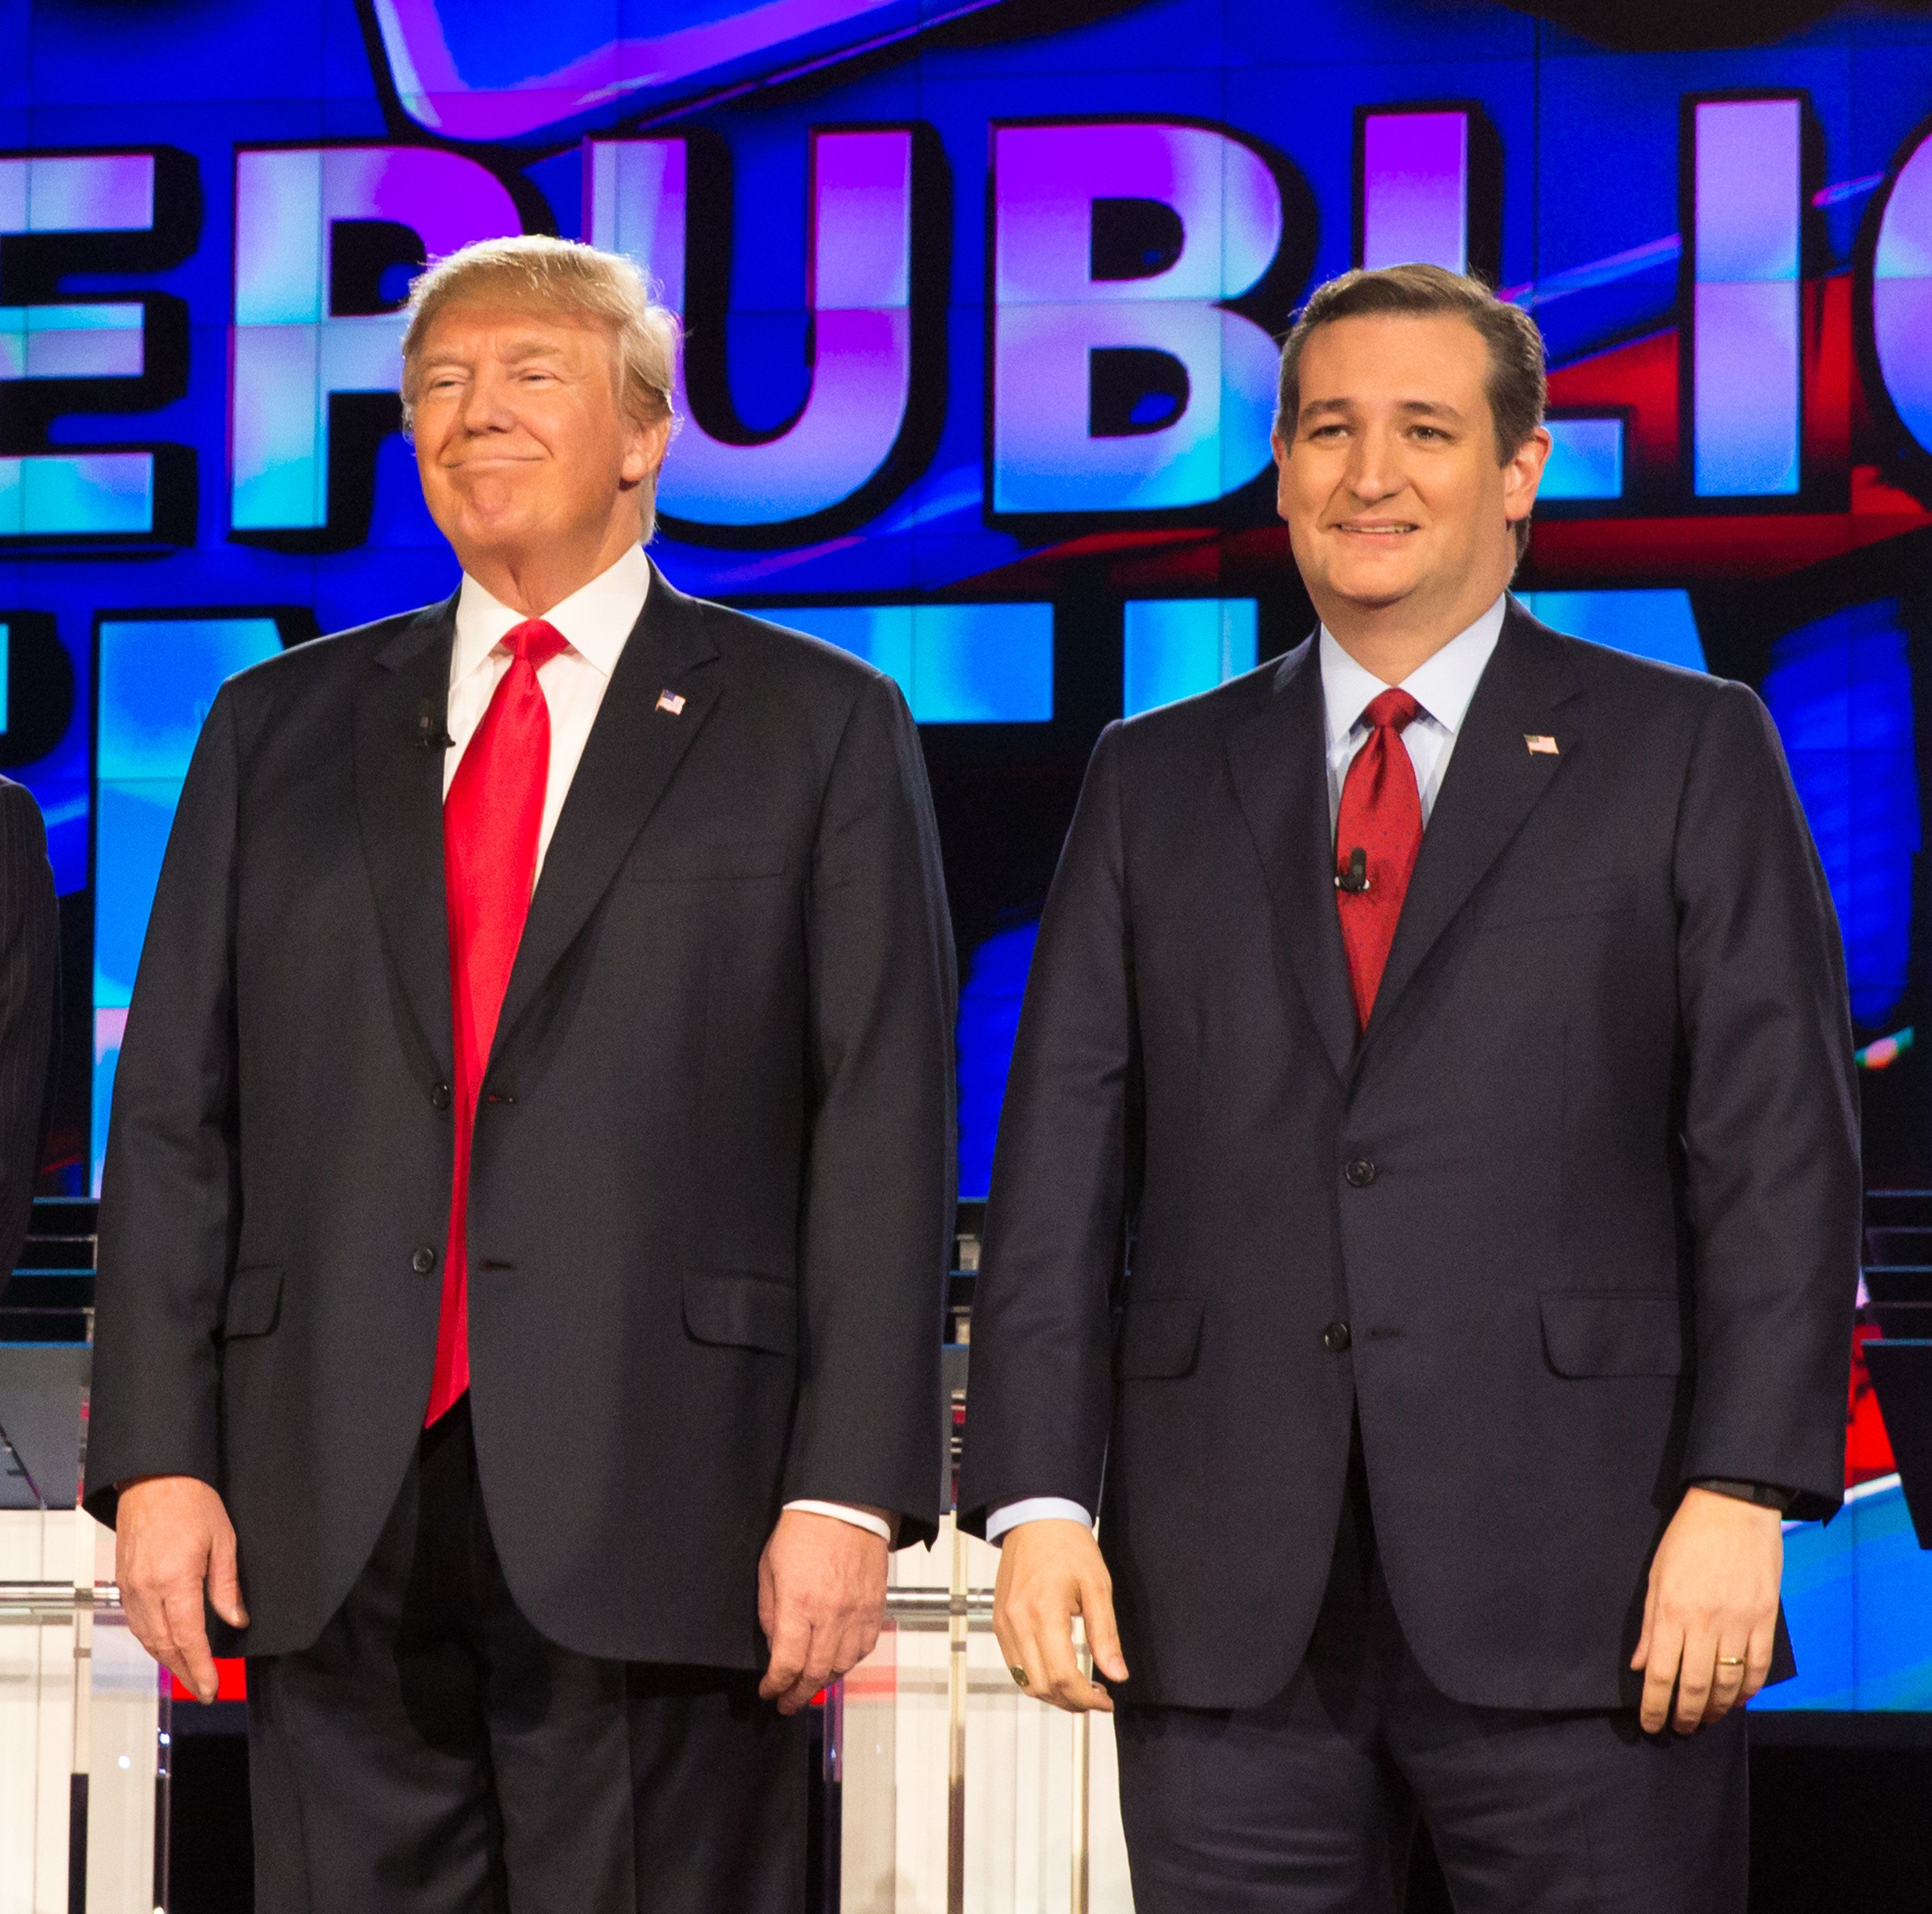 LAS VEGAS, NV - December 15, 2015:  Donald Trump, Ted Cruz pictured at the CNN GOP Debate at The Venetain Resort in Las vegas, NV on December 15, 2015. Credit: Erik Kabik Photography/ MediaPunch/IPX